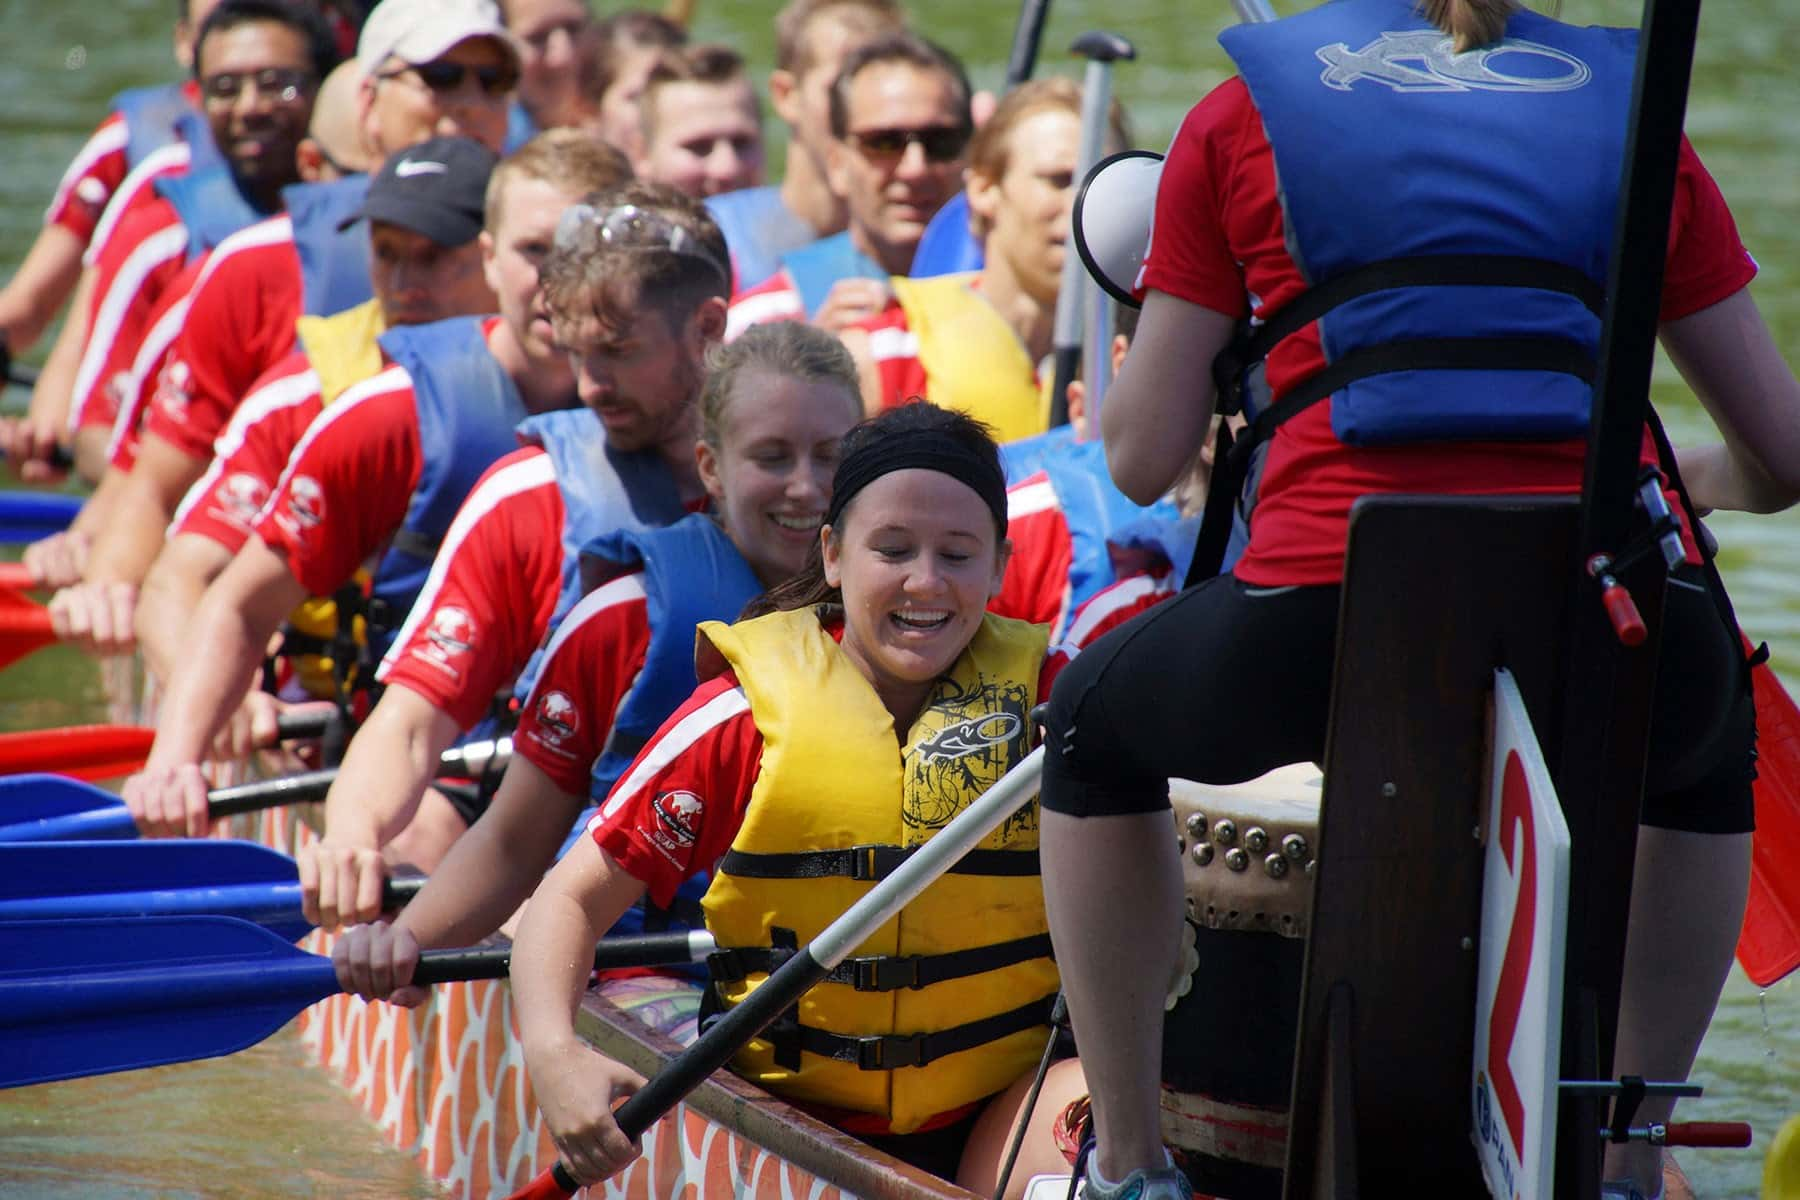 080116_dragonboat_album_01_01